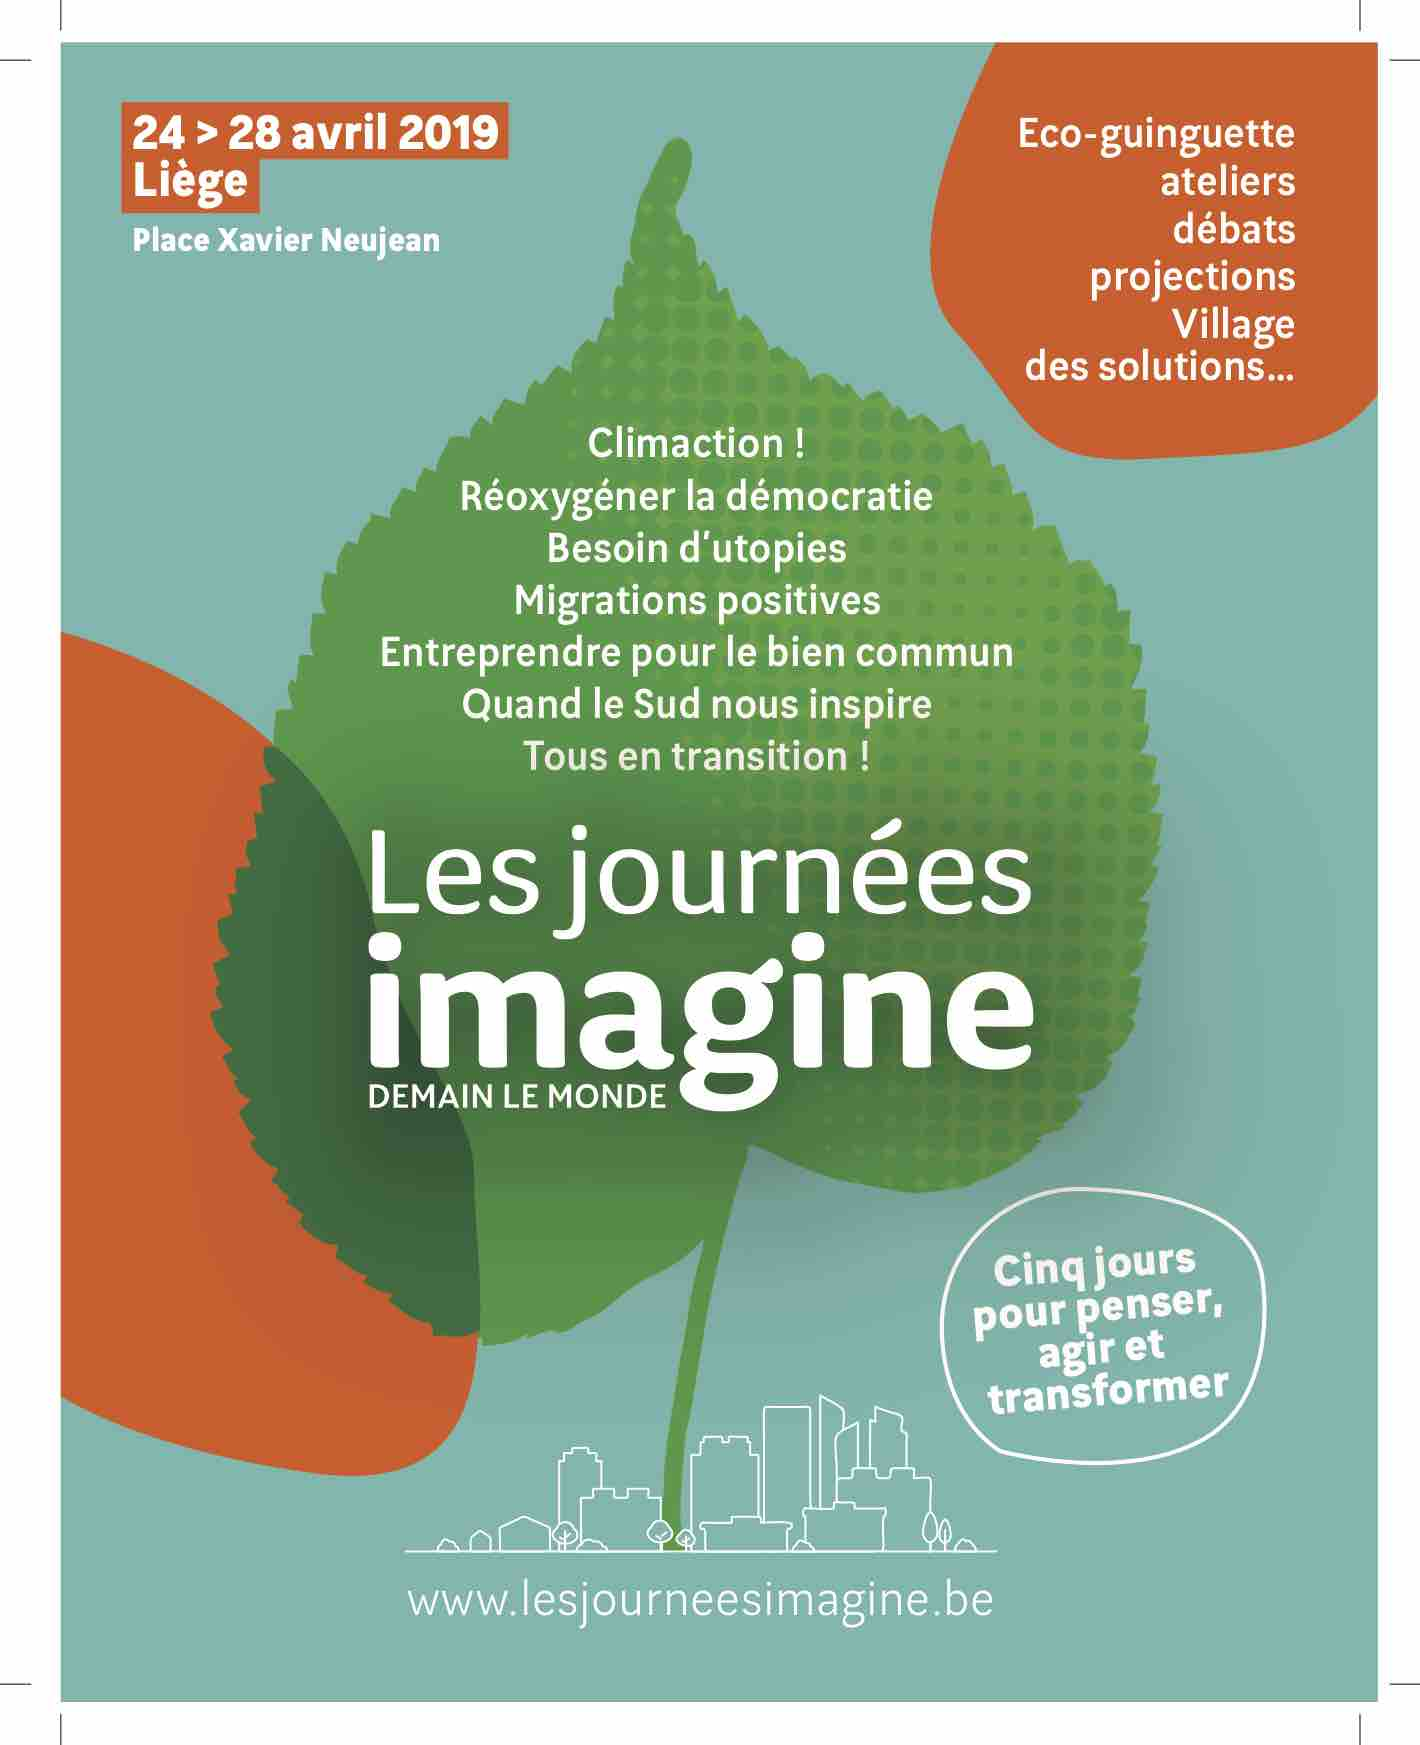 LES JOURNEES IMAGINE affiche